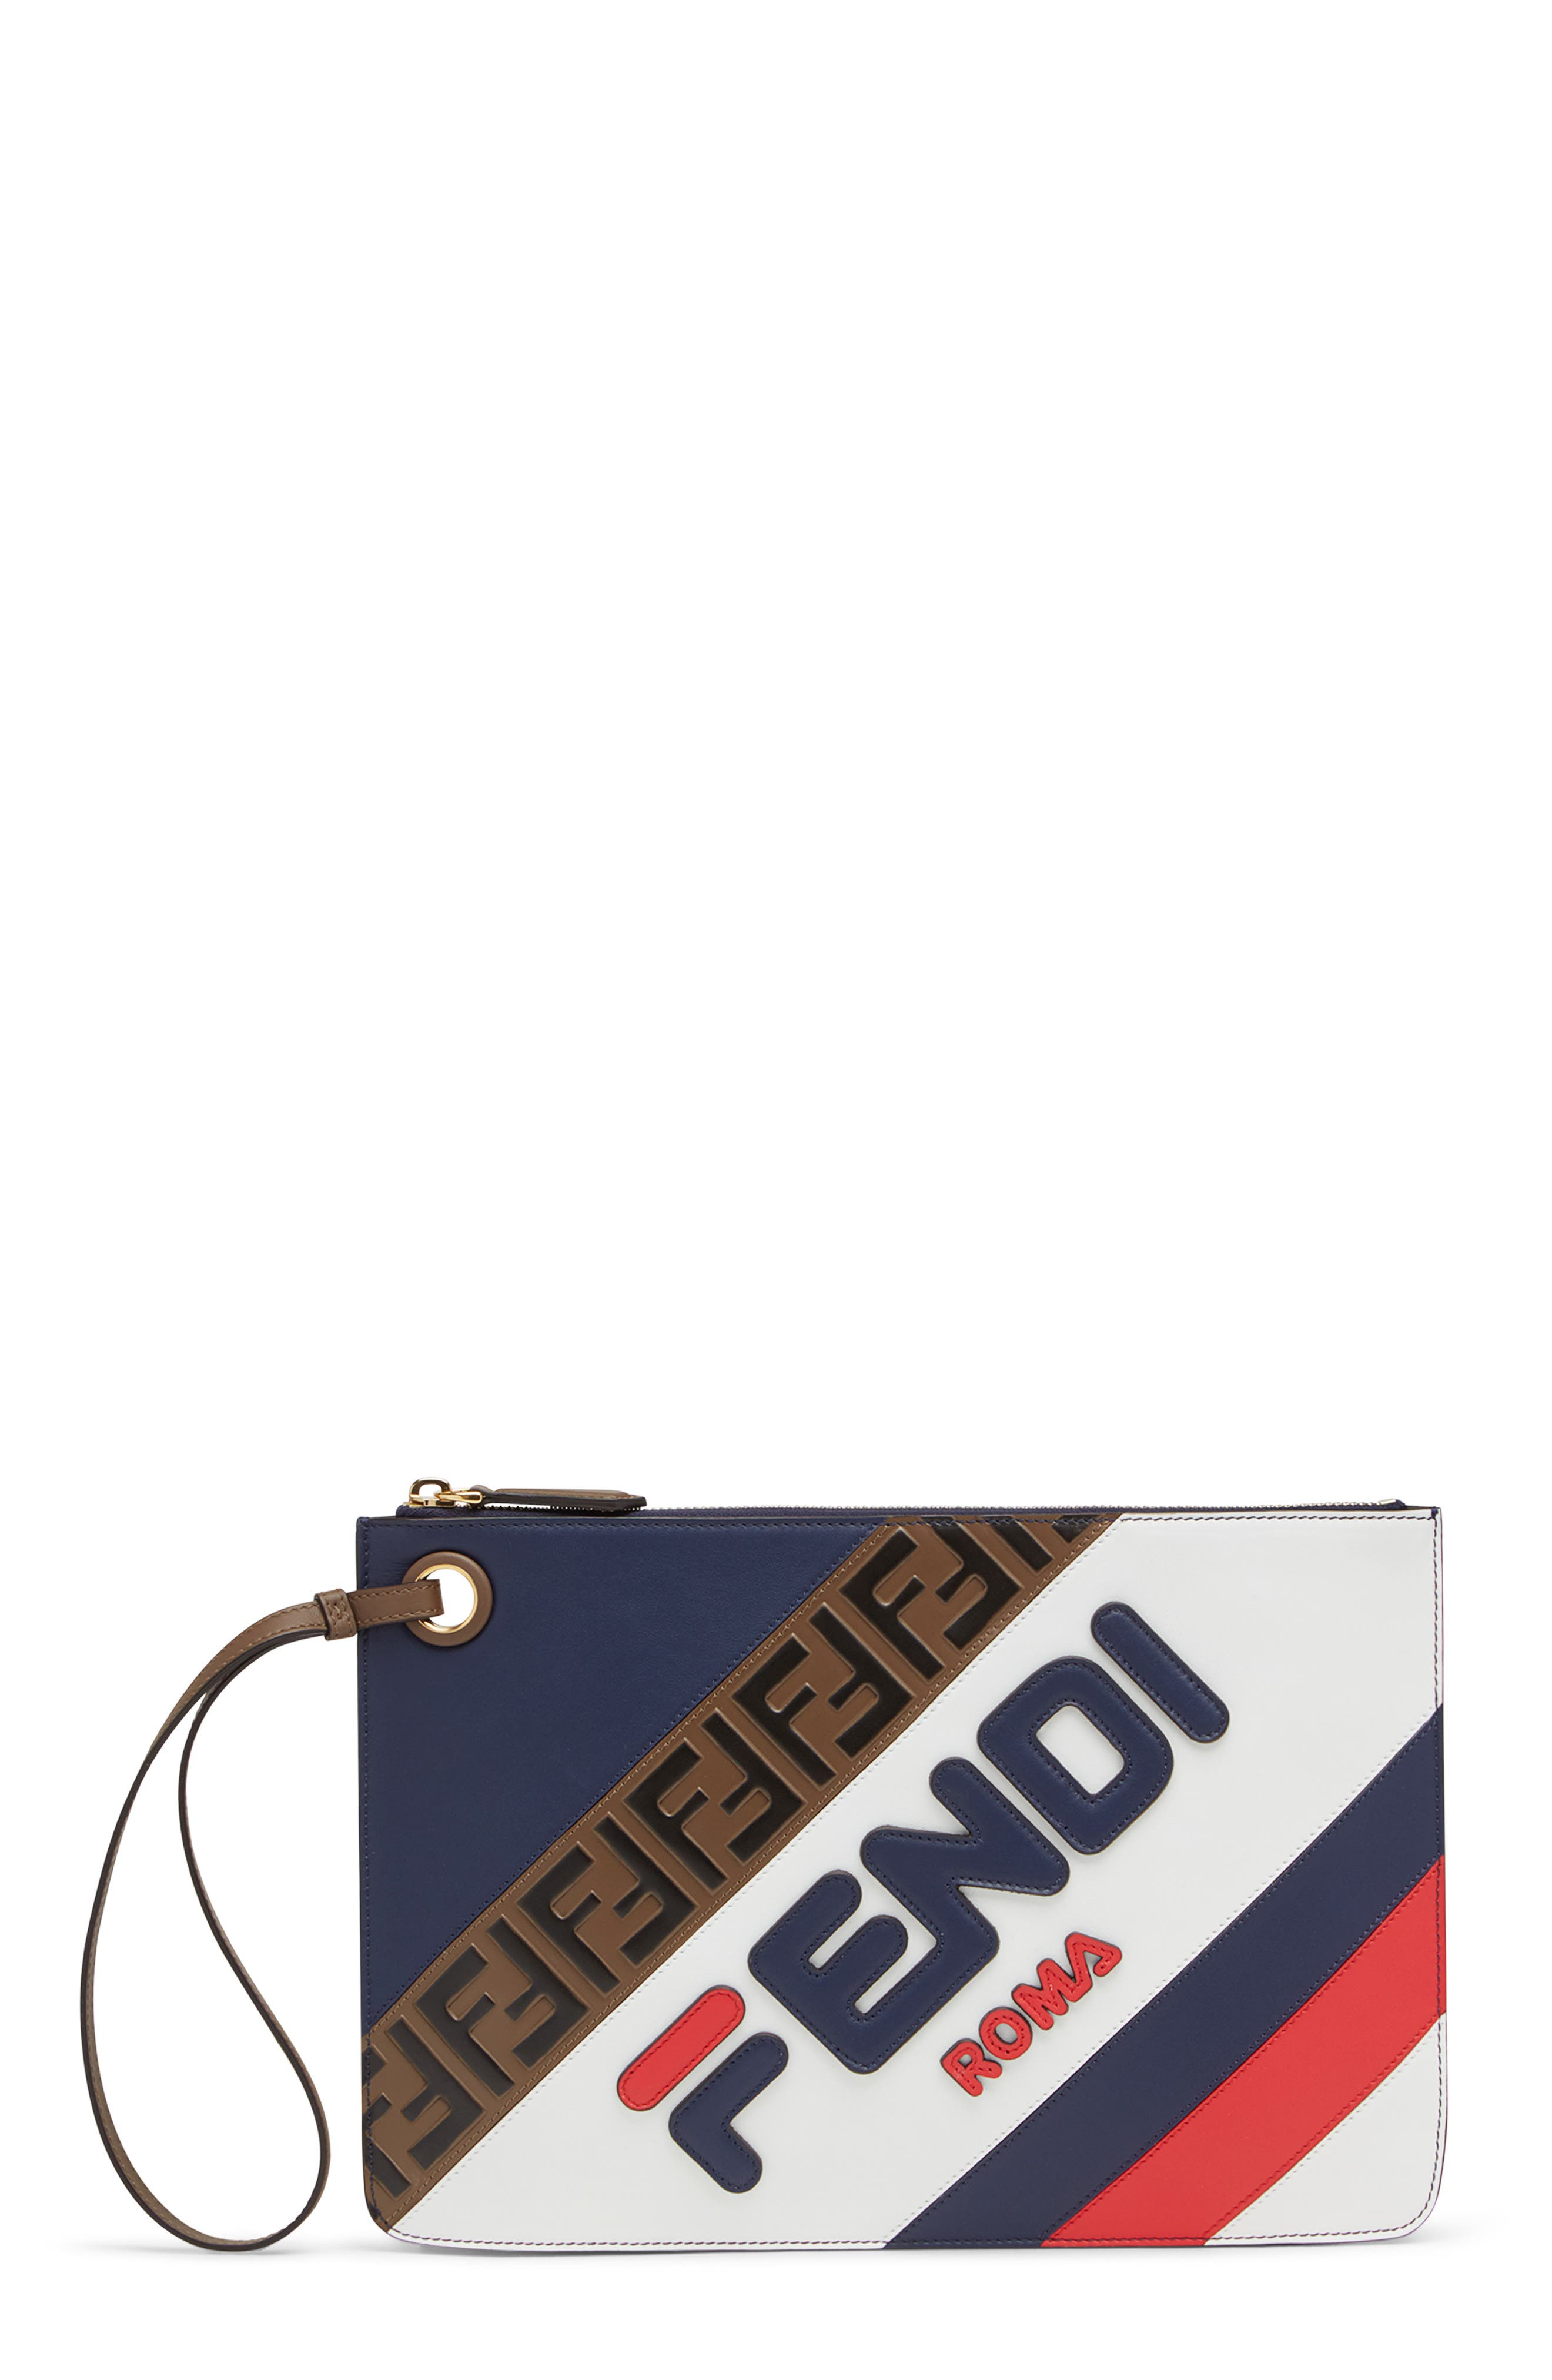 FENDI x FILA Medium Mania Logo Leather Clutch, Main, color, BLUE/ BERRY MULTI